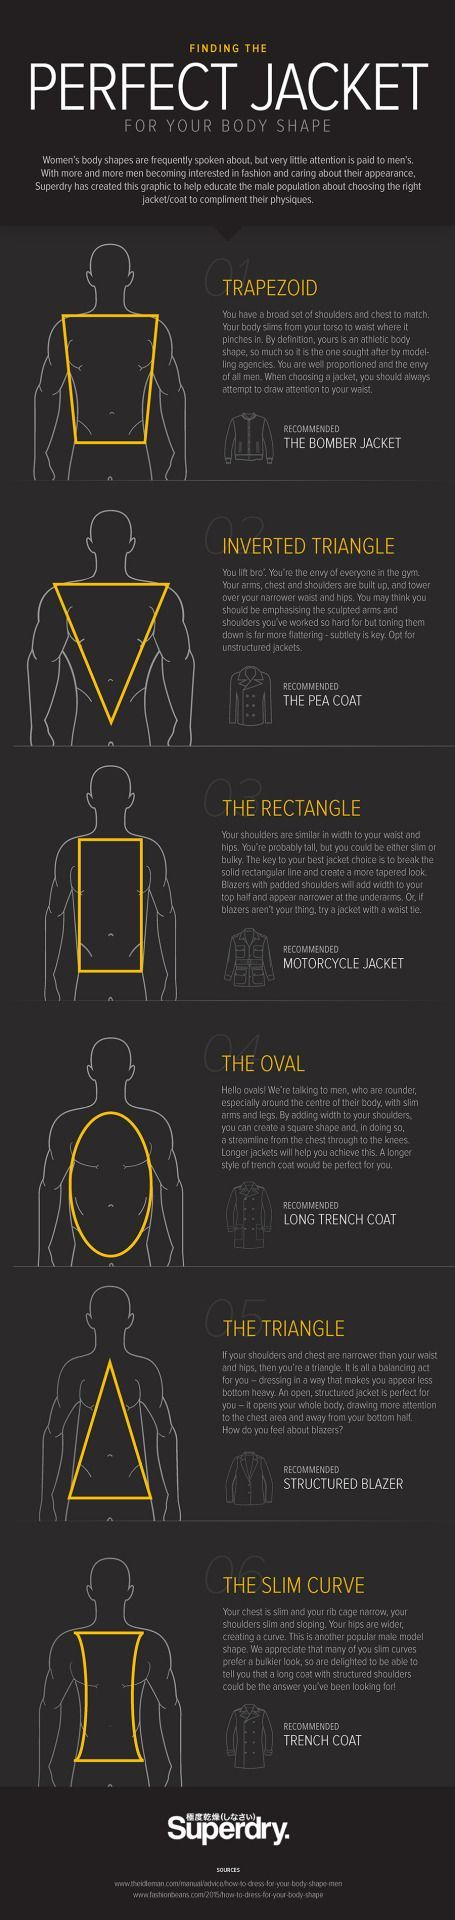 Too In The Style With Images Body Shapes Men Style Tips Mens